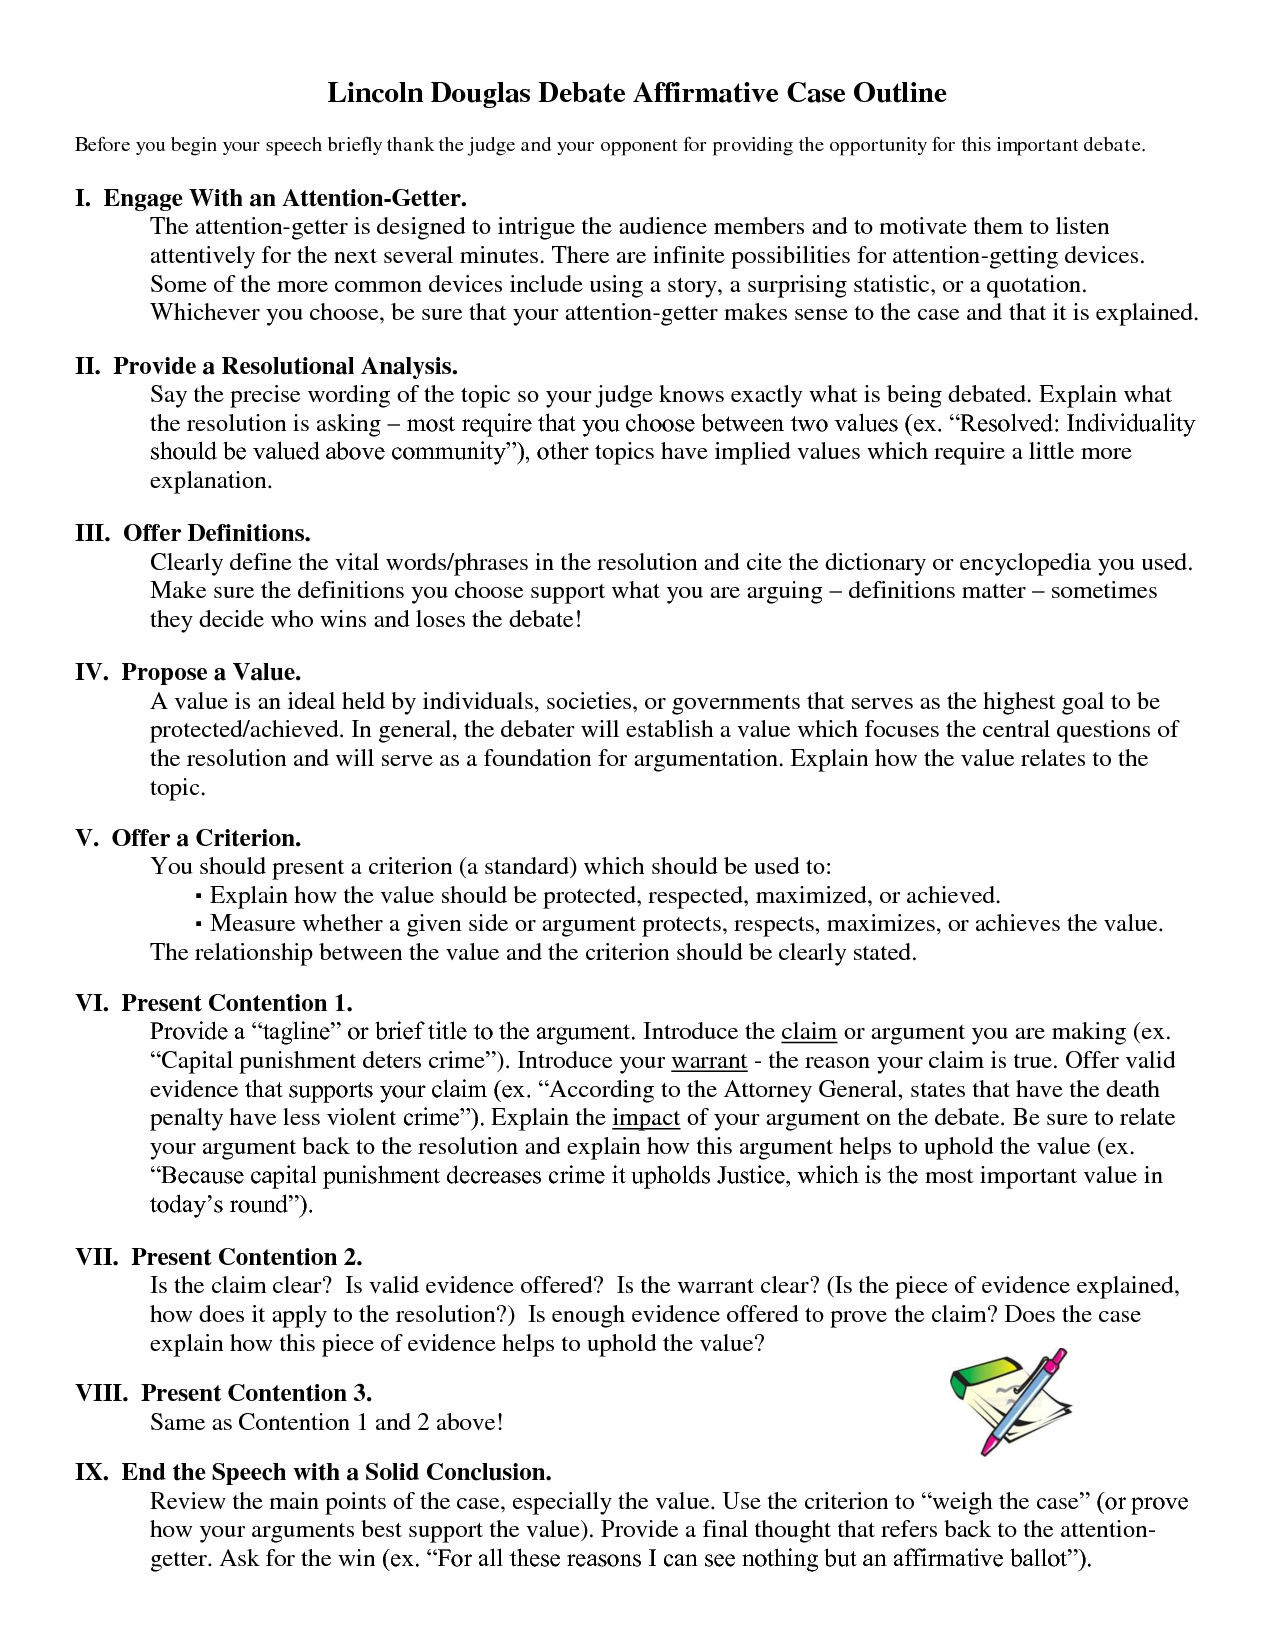 013 Essay Example Lincoln Douglas Affirmative Outline Argumentative On Death Unbelievable Penalty Ideas Persuasive About In The Philippines Pro Full